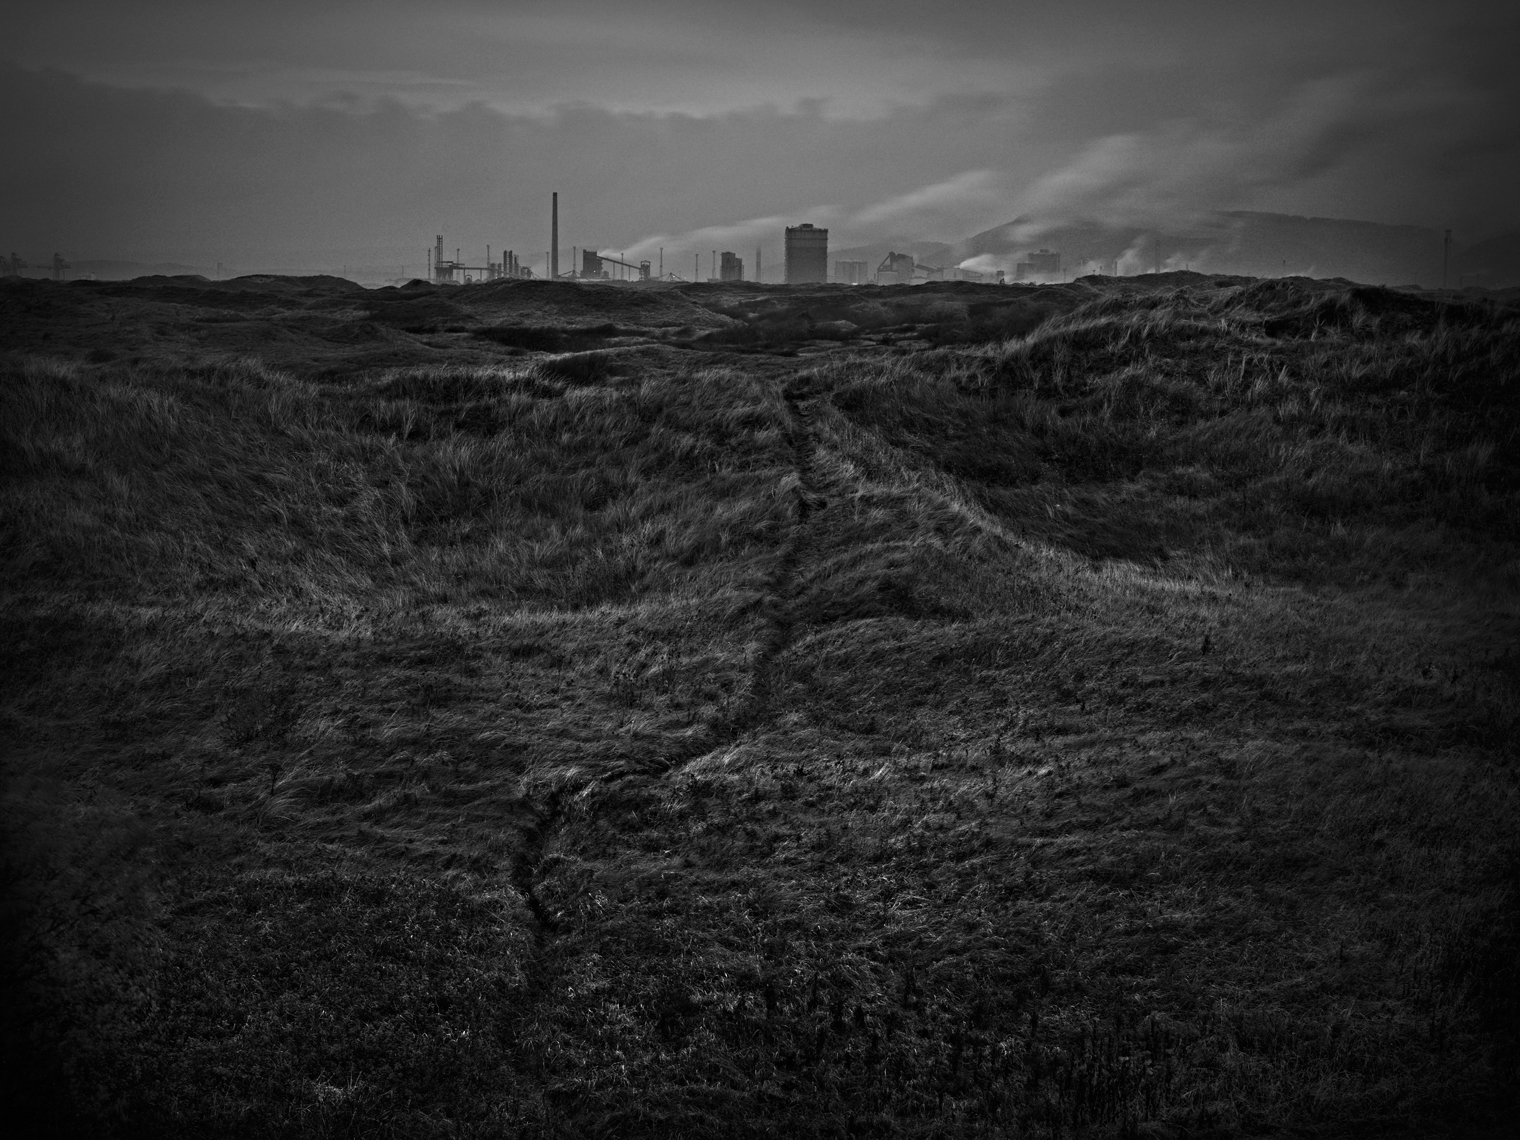 Jon Wyatt Photography - Port Talbot Steelworks and Kenfig Dunes, South Wales